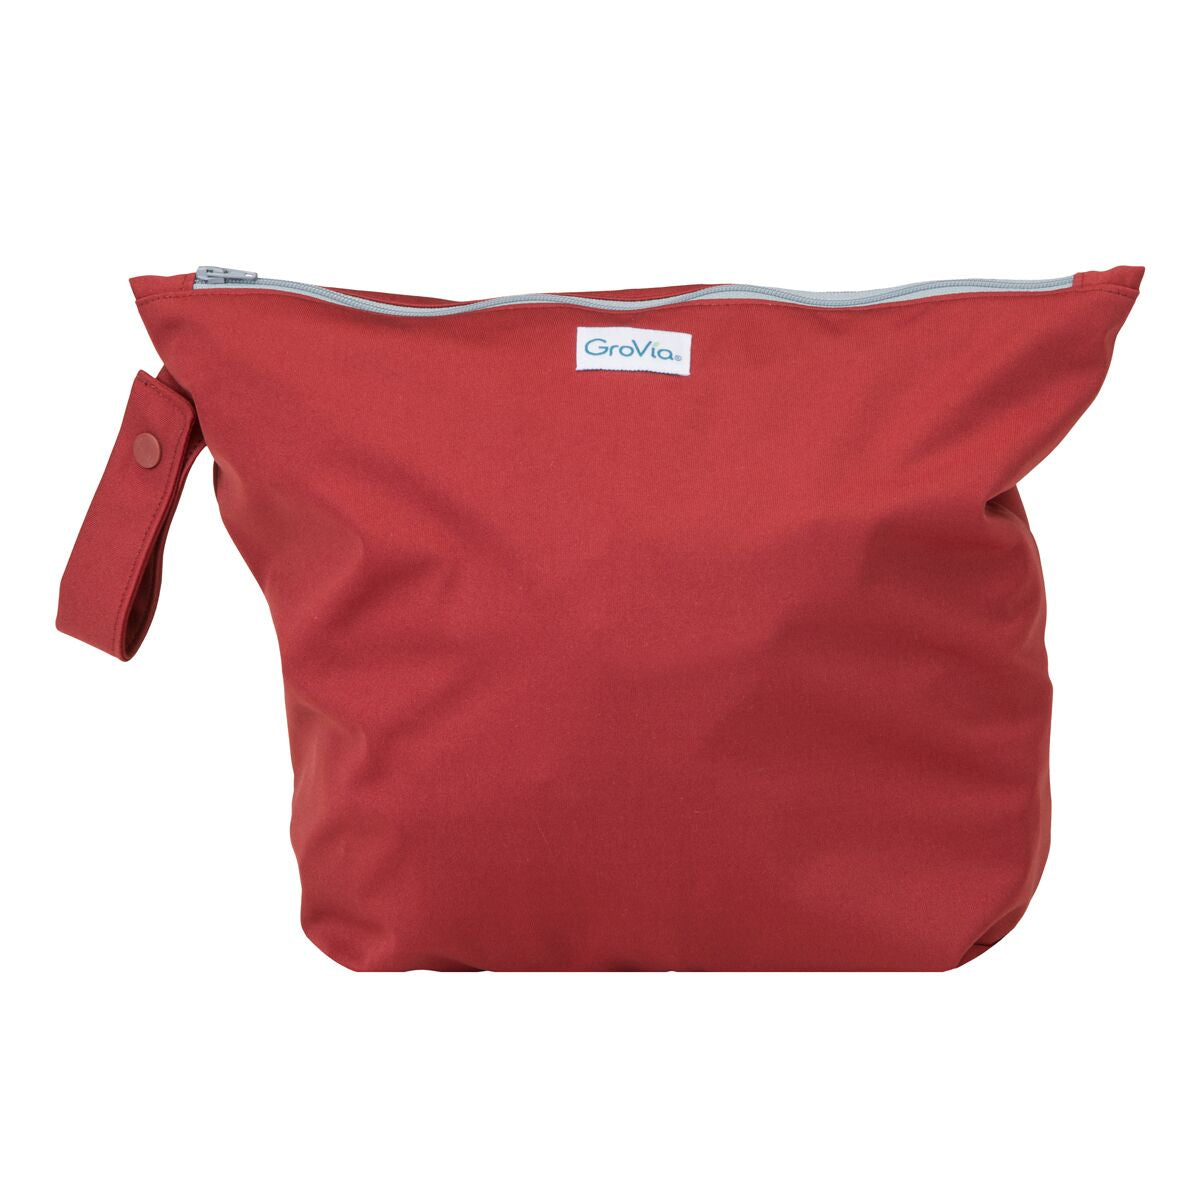 GroVia Zippered Wet Bag